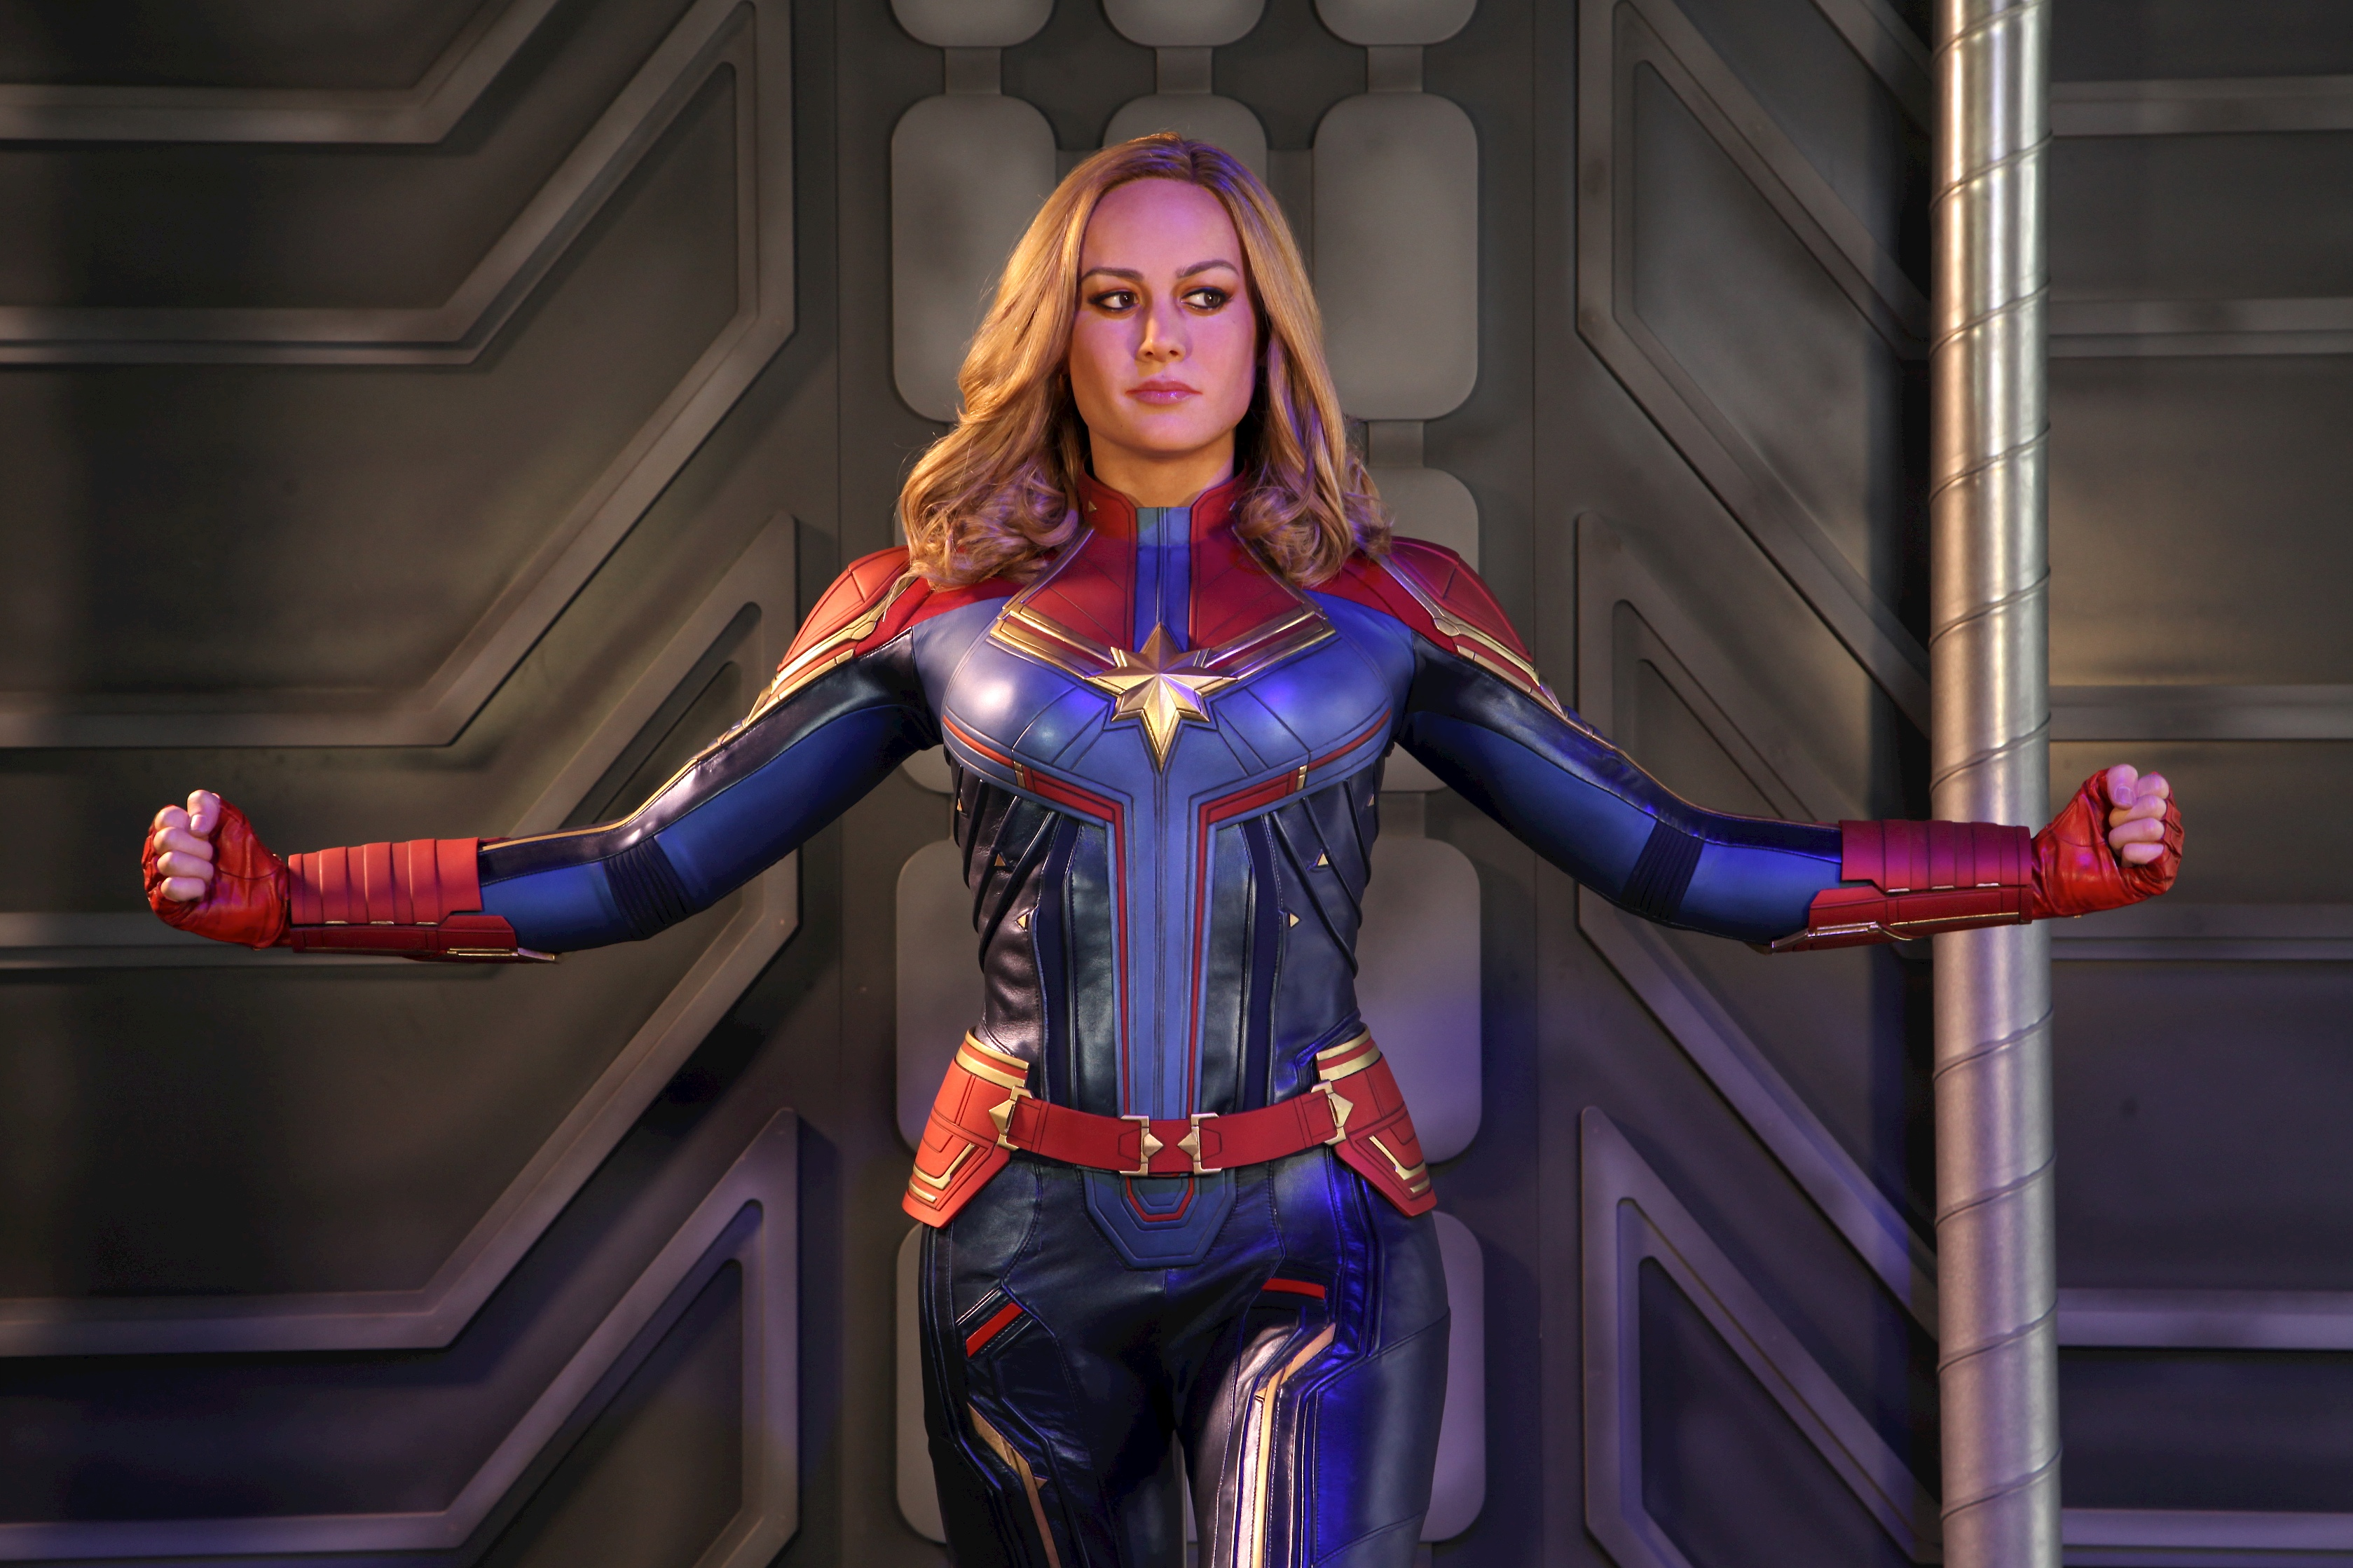 Captain Marvel with her arms out wax figure at Madame Tussauds Blackpool